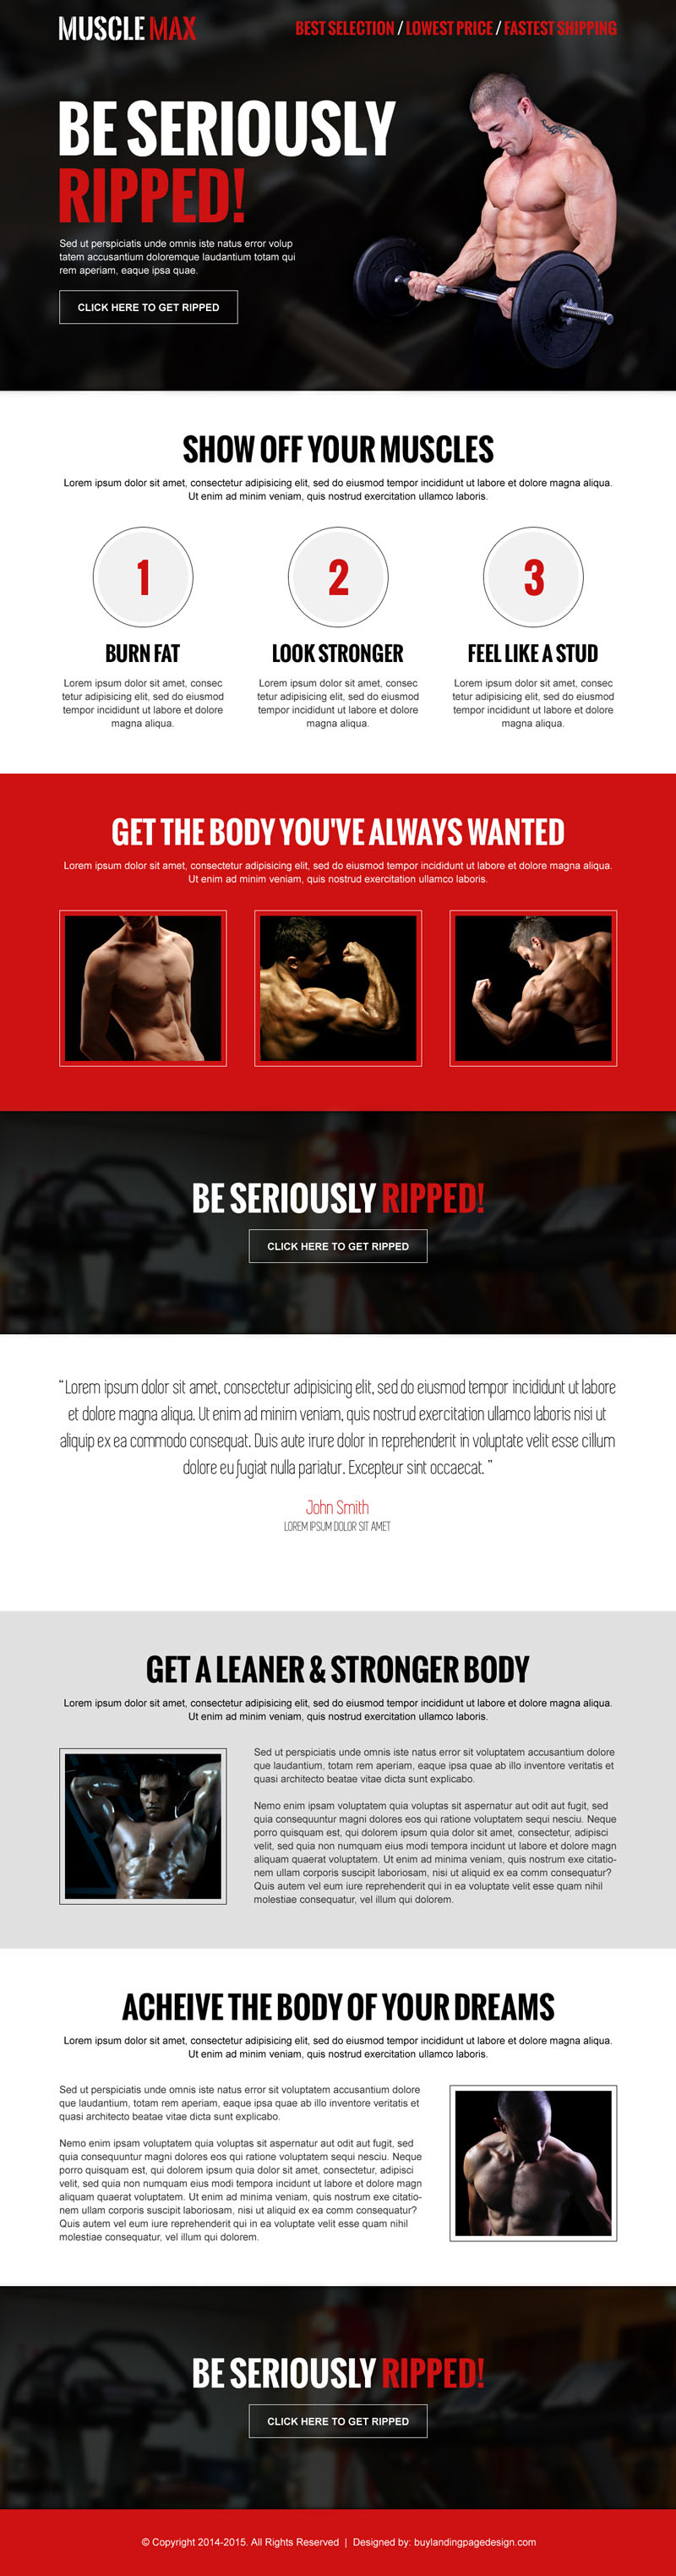 get-ripped-muscle-bodybuilding-call-to-action-informative-landing-page-design-templates-015